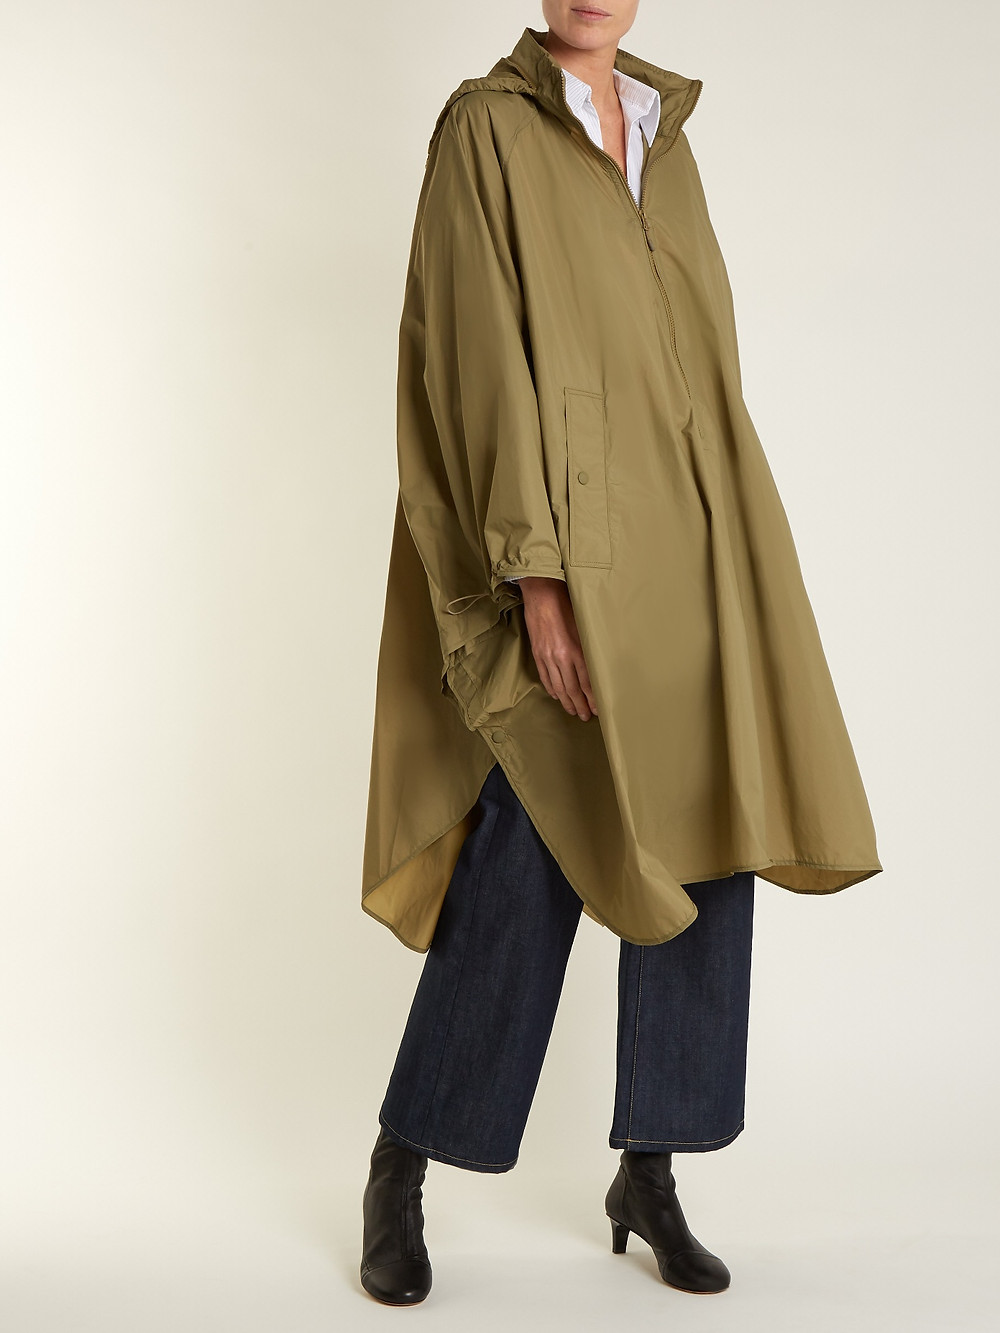 Isabel Marant Etoile Christo funnel-collar lightweight cape $380